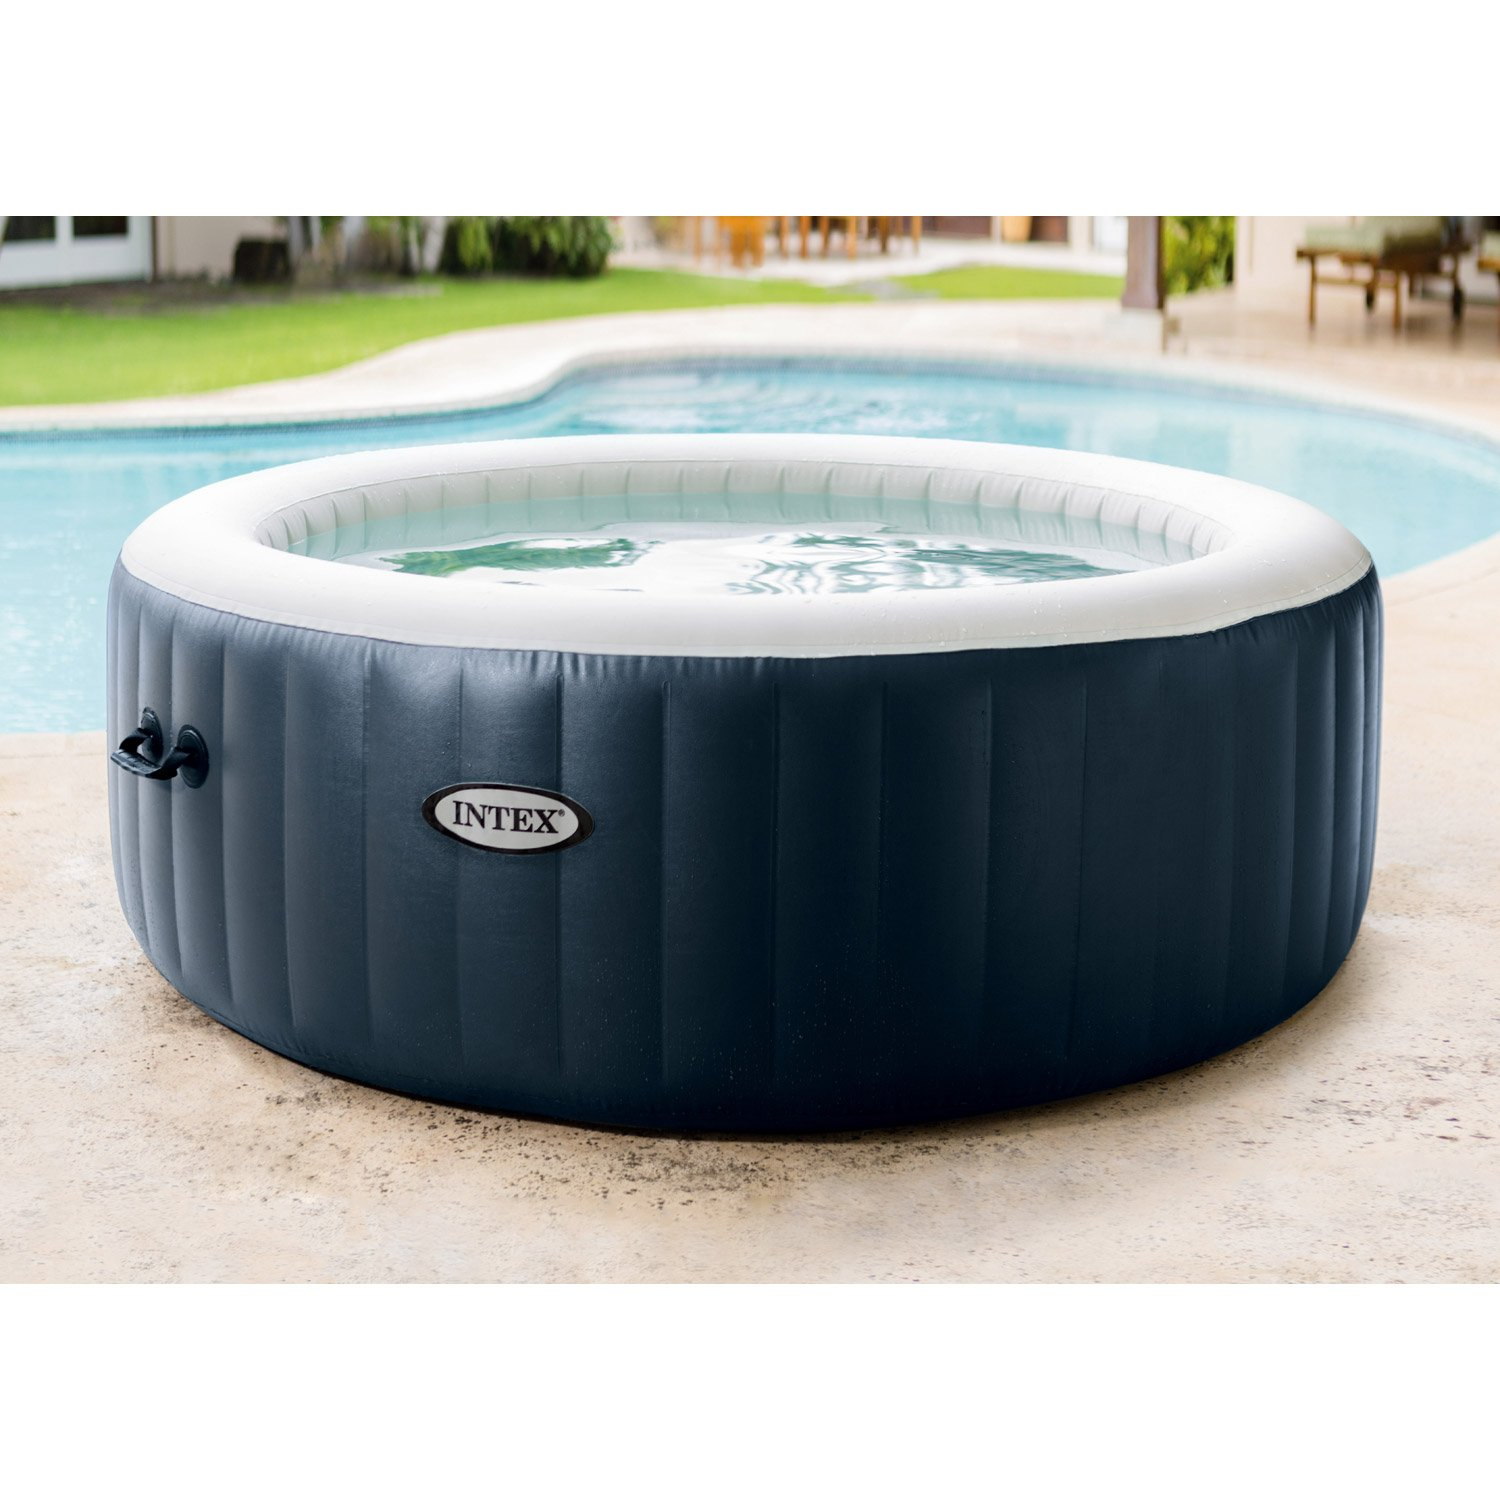 spa gonflable a bulles pure spa intex 6 places